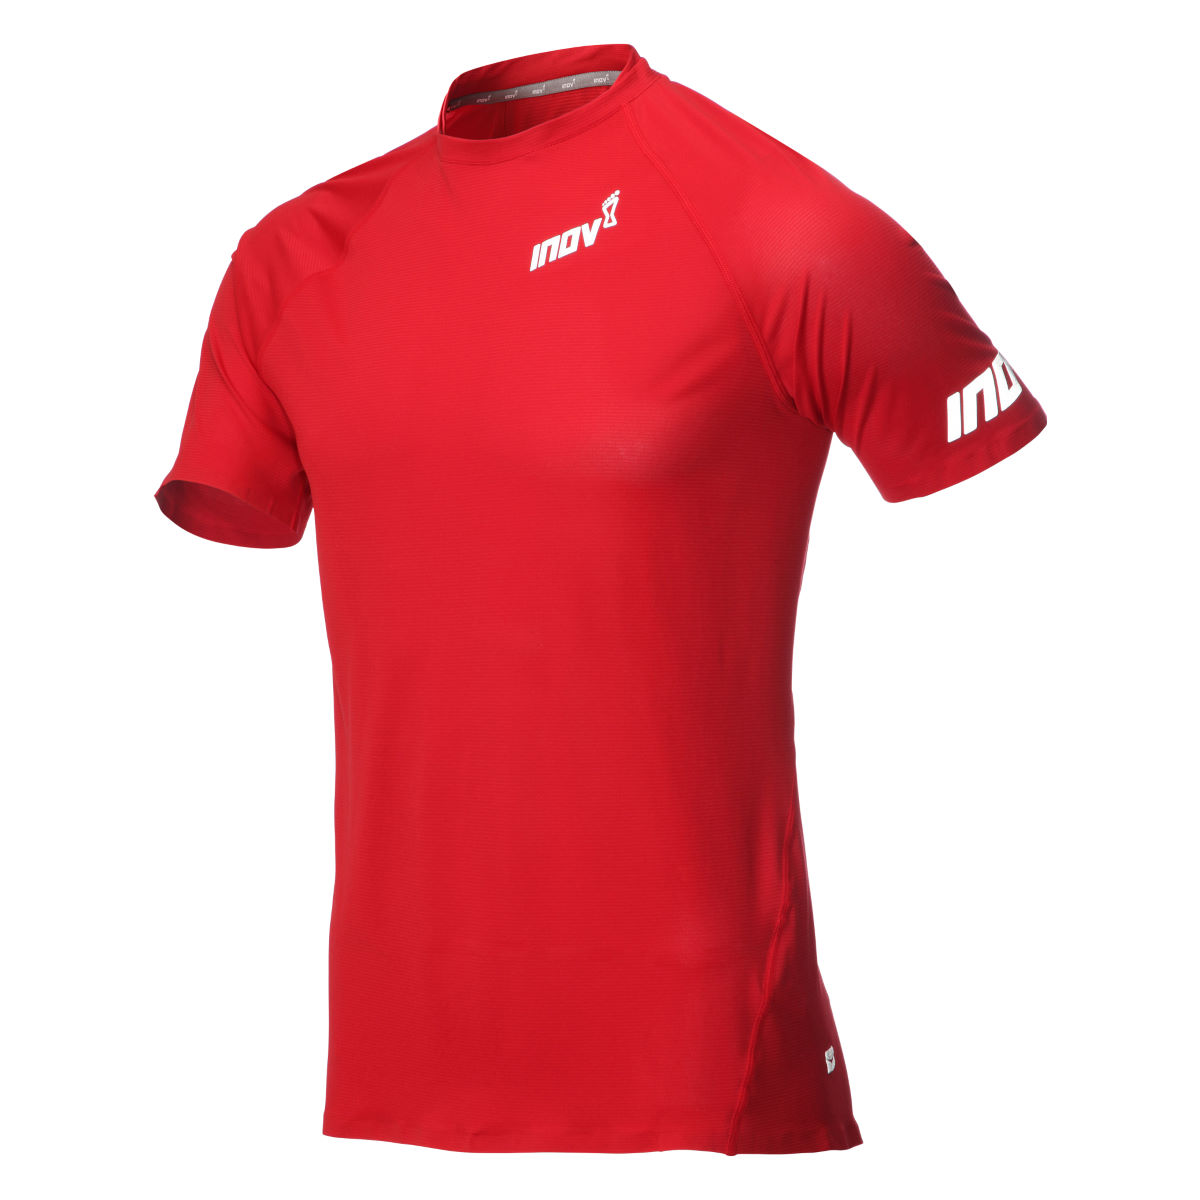 Maillot de corps Inov-8 AT/C (manches courtes) - L Dark Red  T-shirts